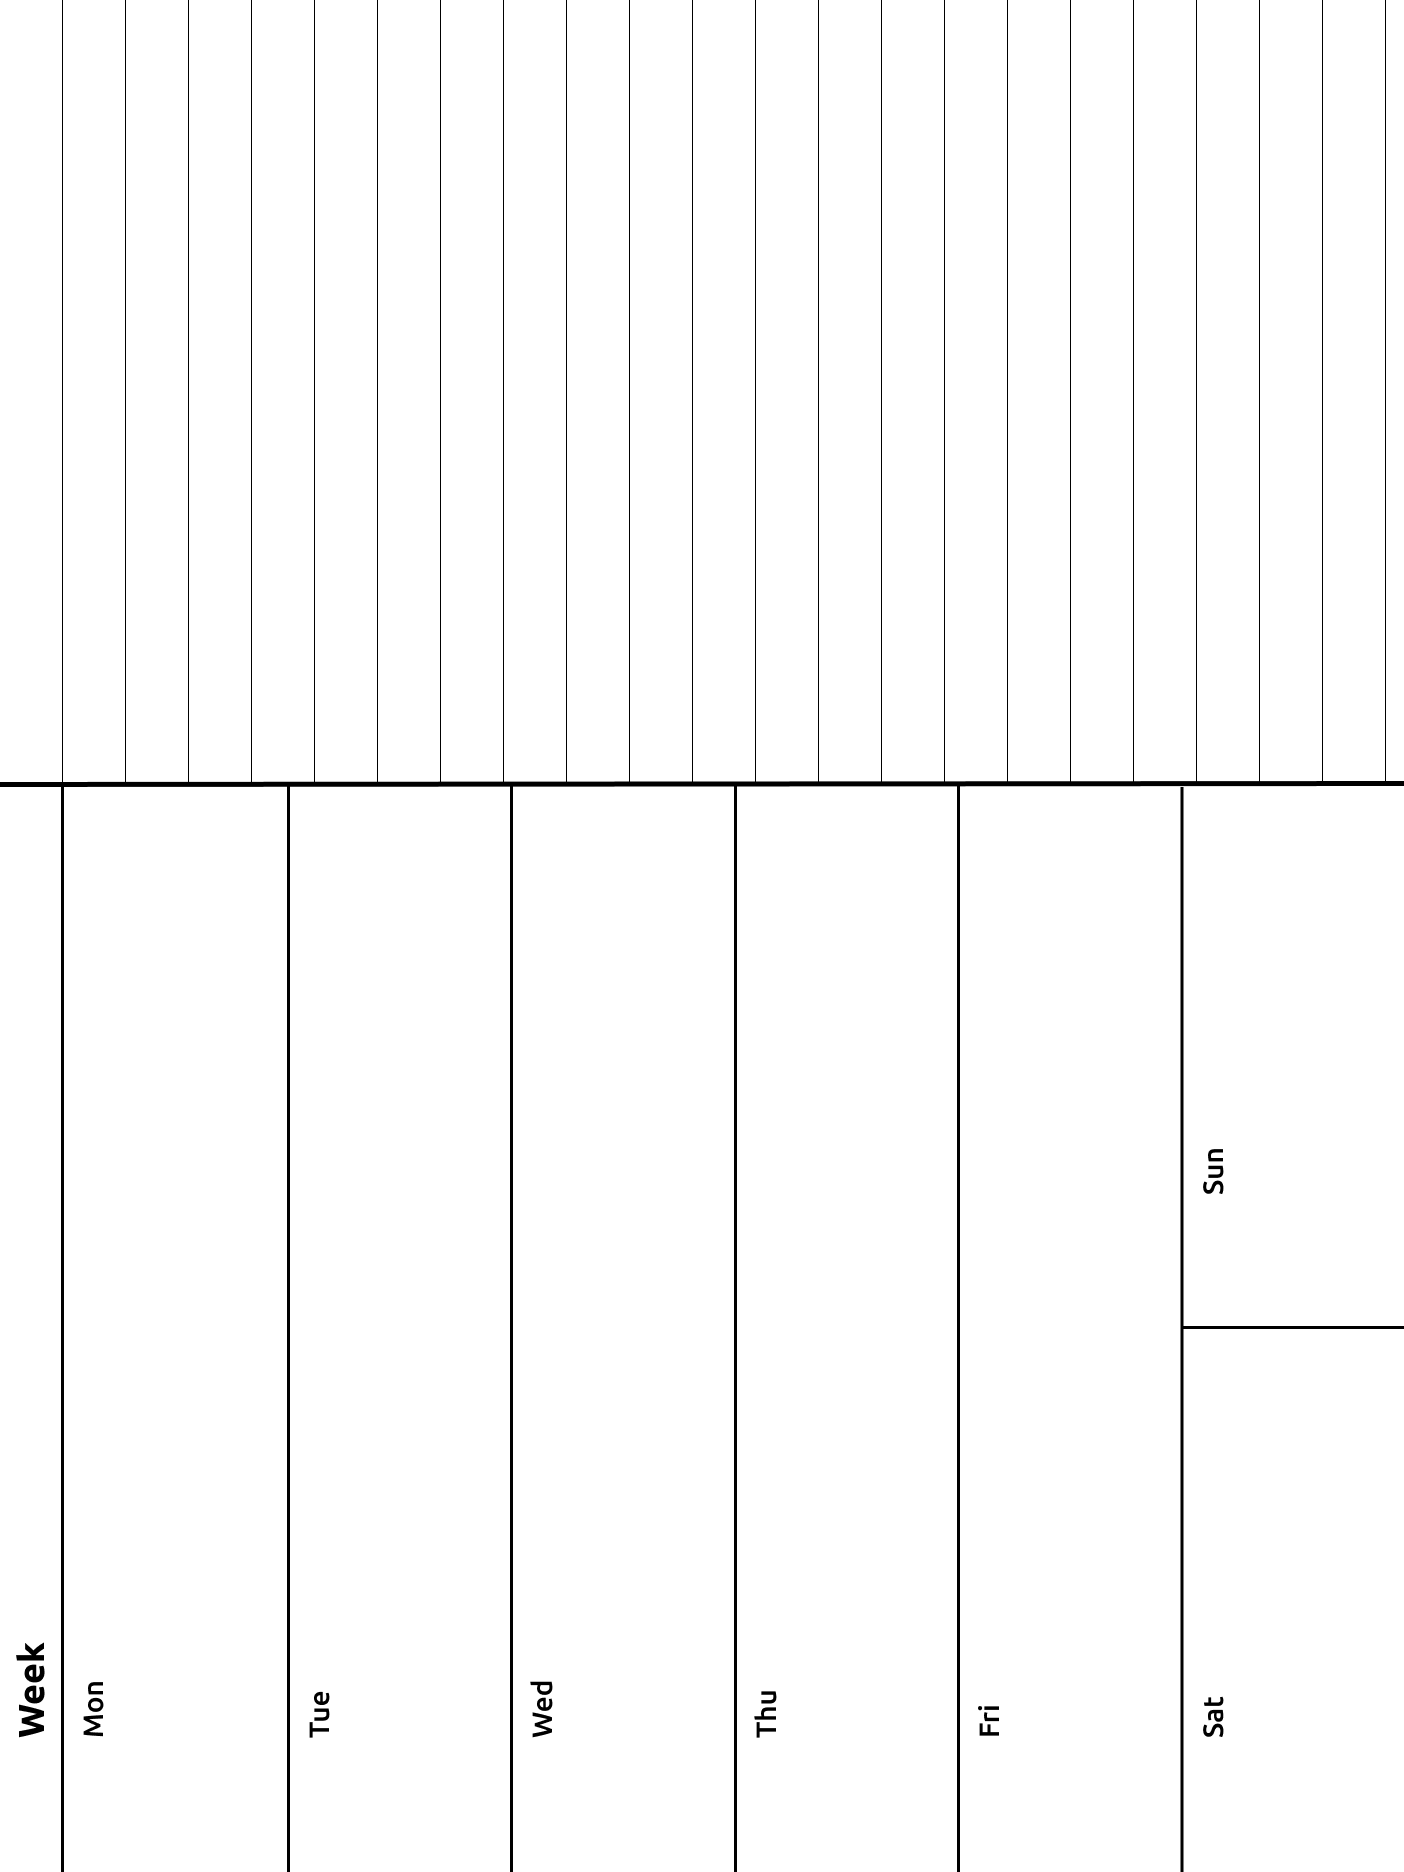 A weekly journal template: left hand side has 6 rows, Mon - Fri, plus Sat & Sun sharing a row; right hand side has 22 row of blank lines to write on.